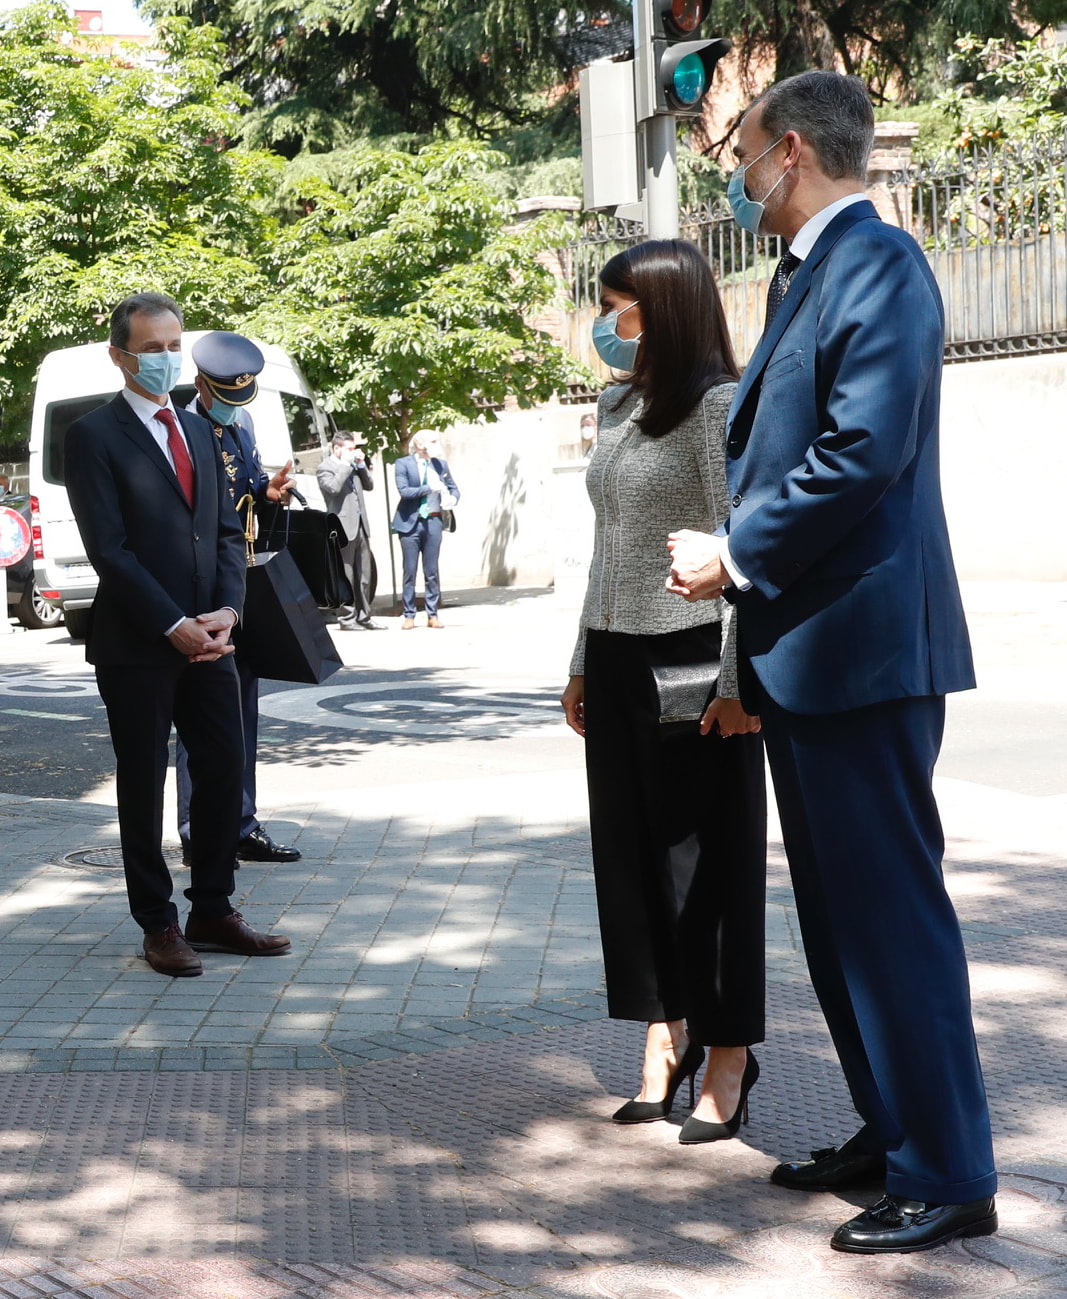 King Felipe VI and Queen Letizia of Spain arrive at the Elcano Royal Institute in Madrid on 25 May 2020